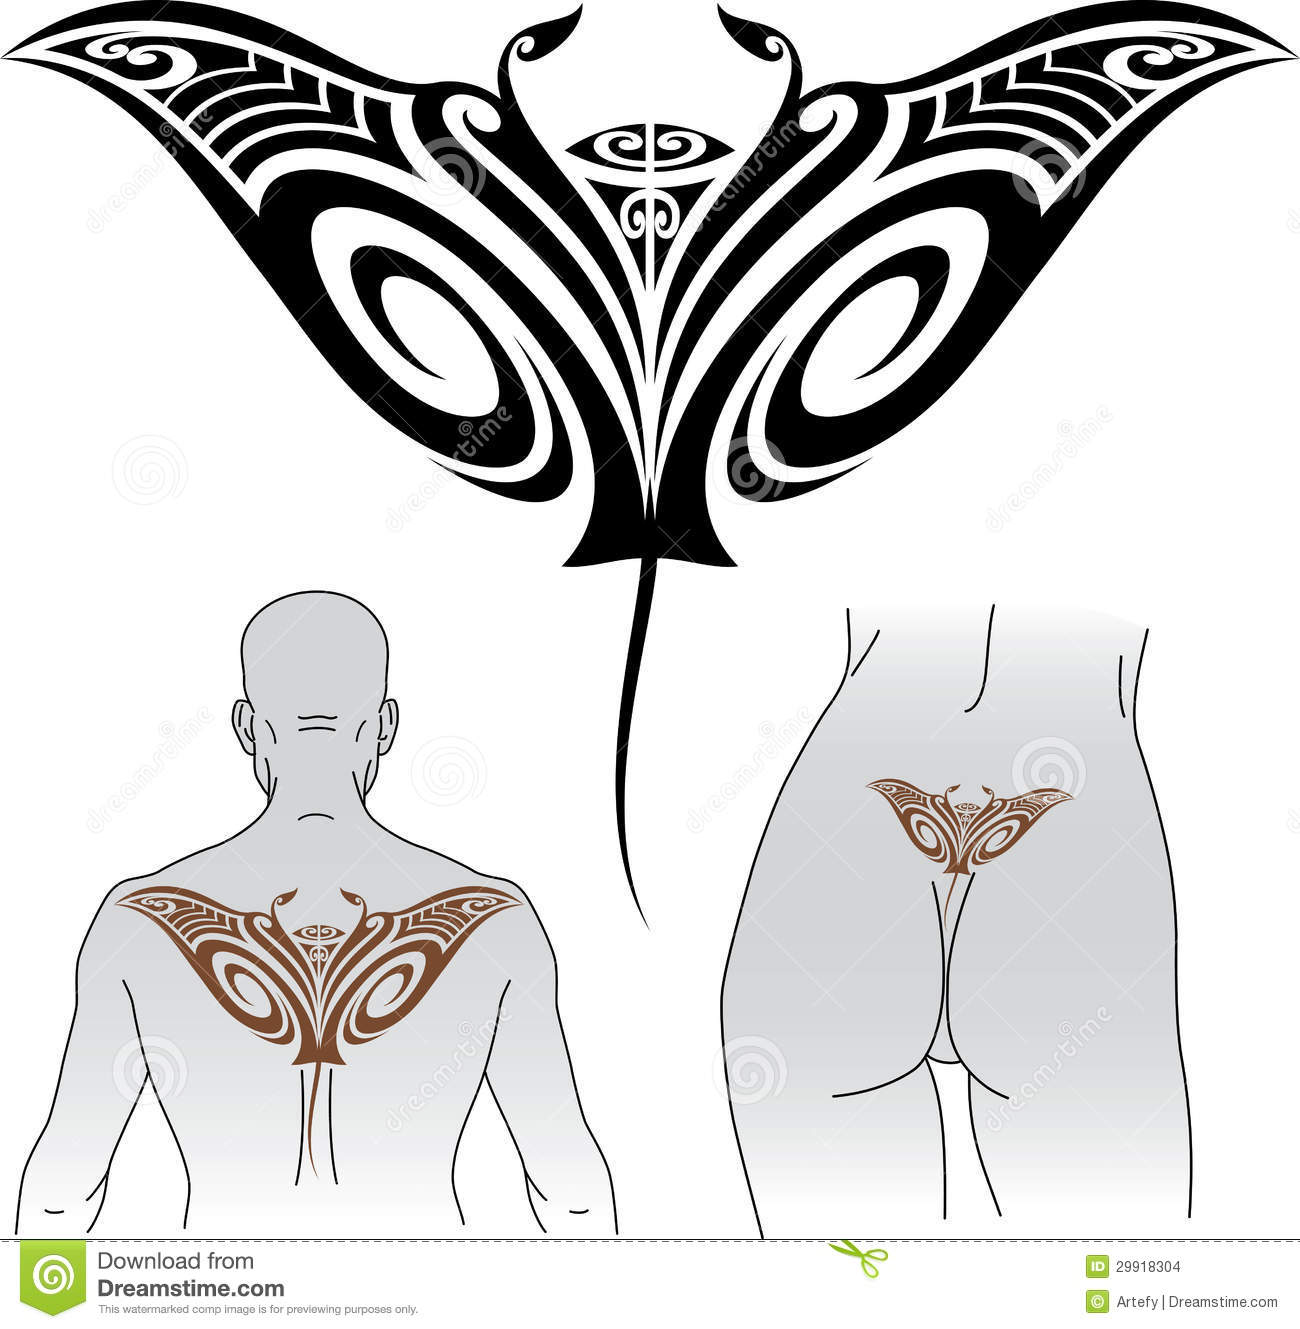 Maori Animal Tattoo Designs: Maori Manta Tattoo Design Stock Images